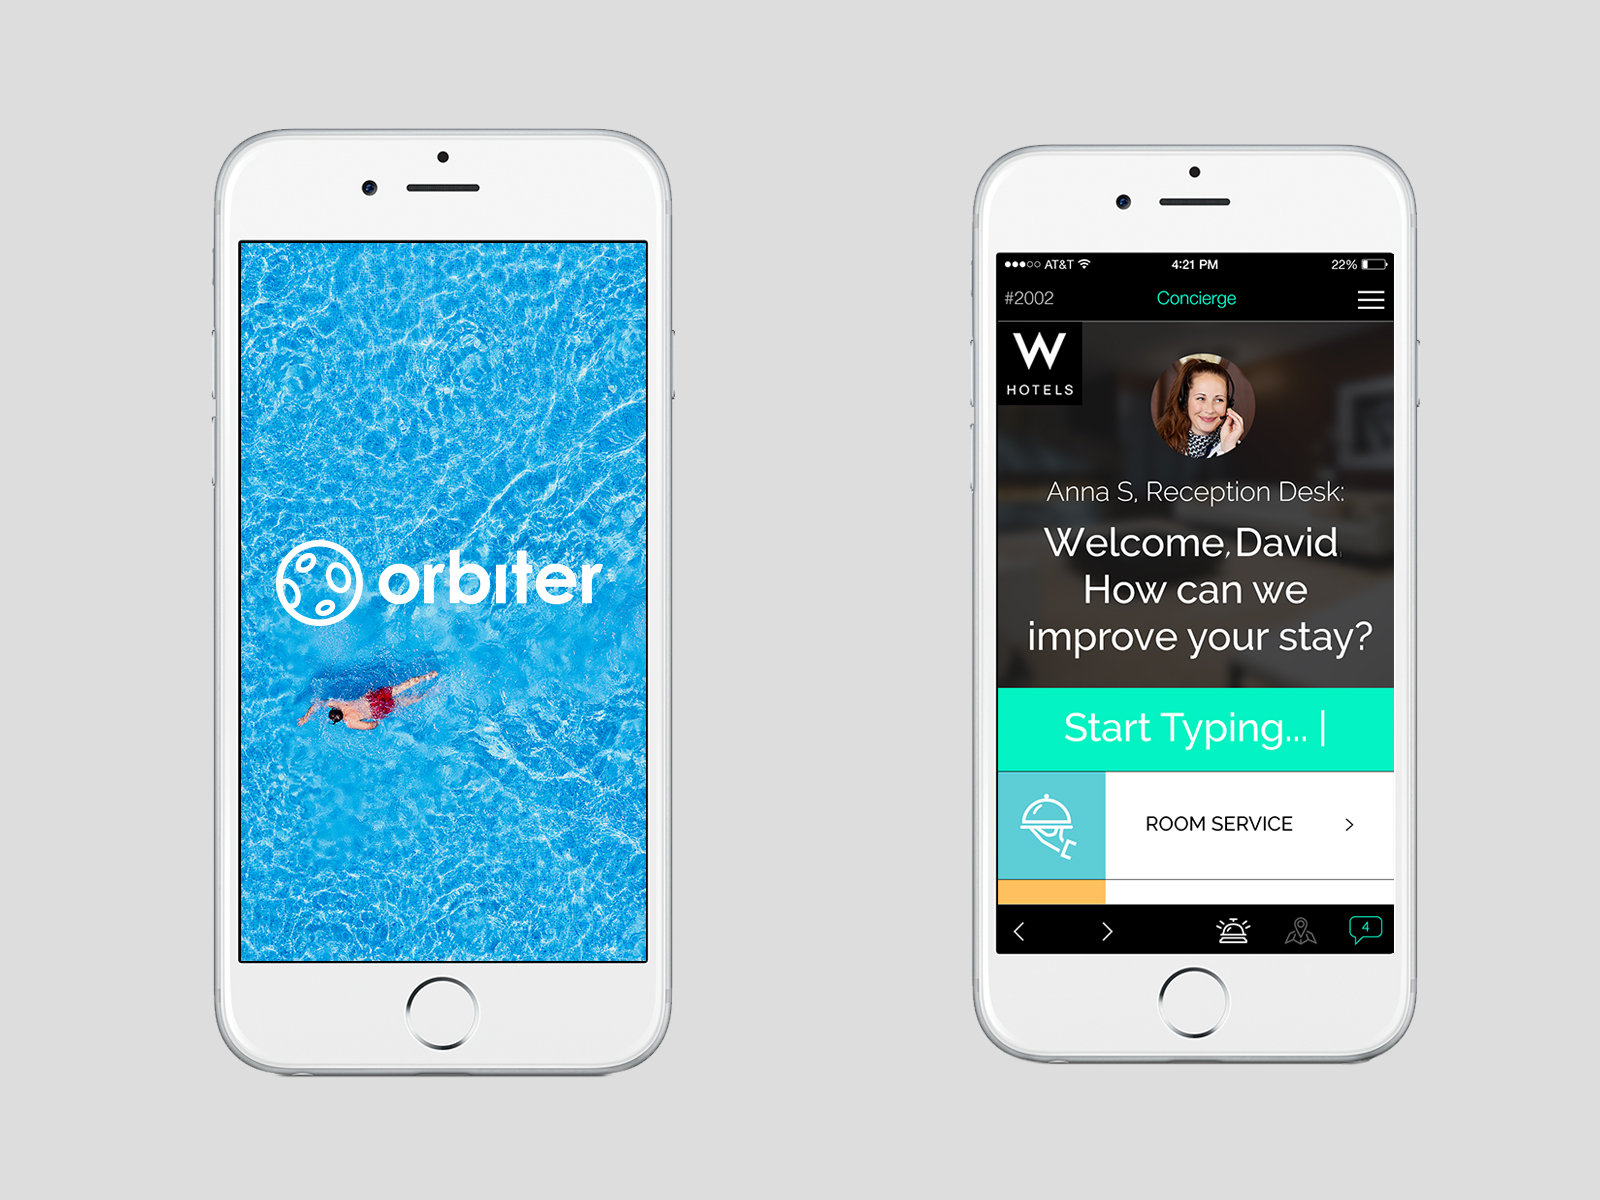 the orbiter app hoteliers app customizable